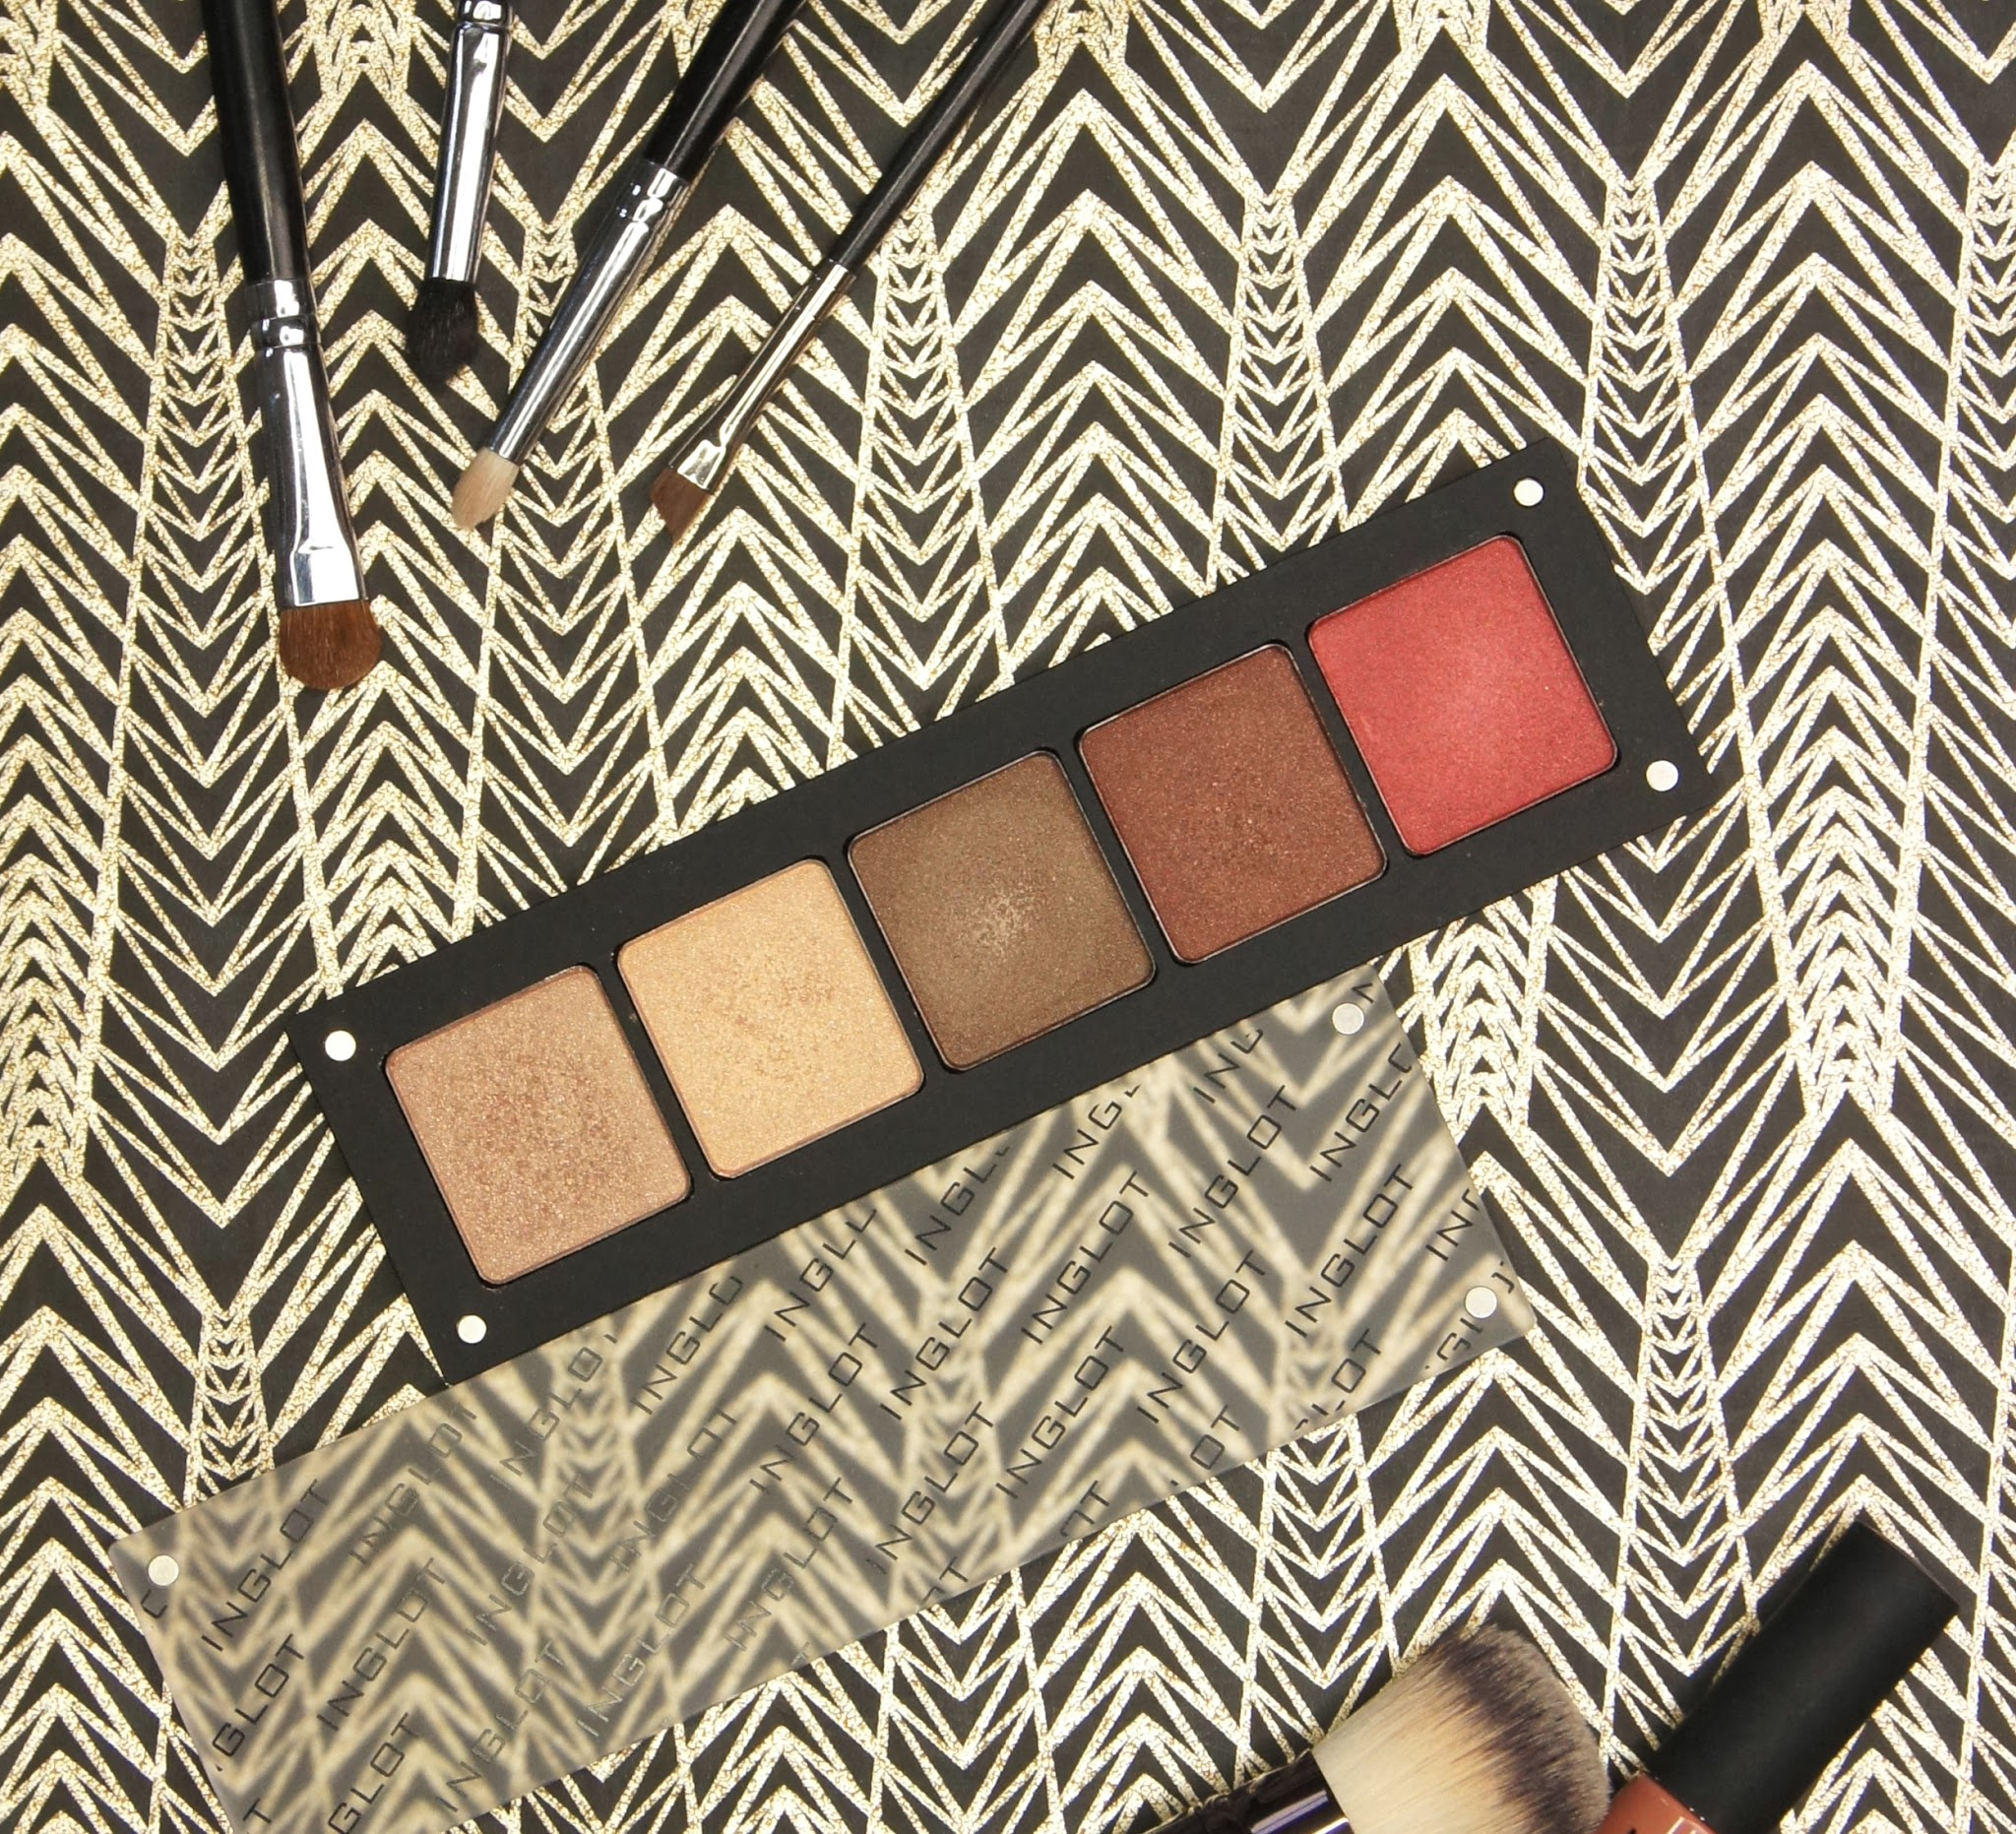 inglot freedom system custom eyeshadow palette review shades 07 11 421 422 607 mac comparison